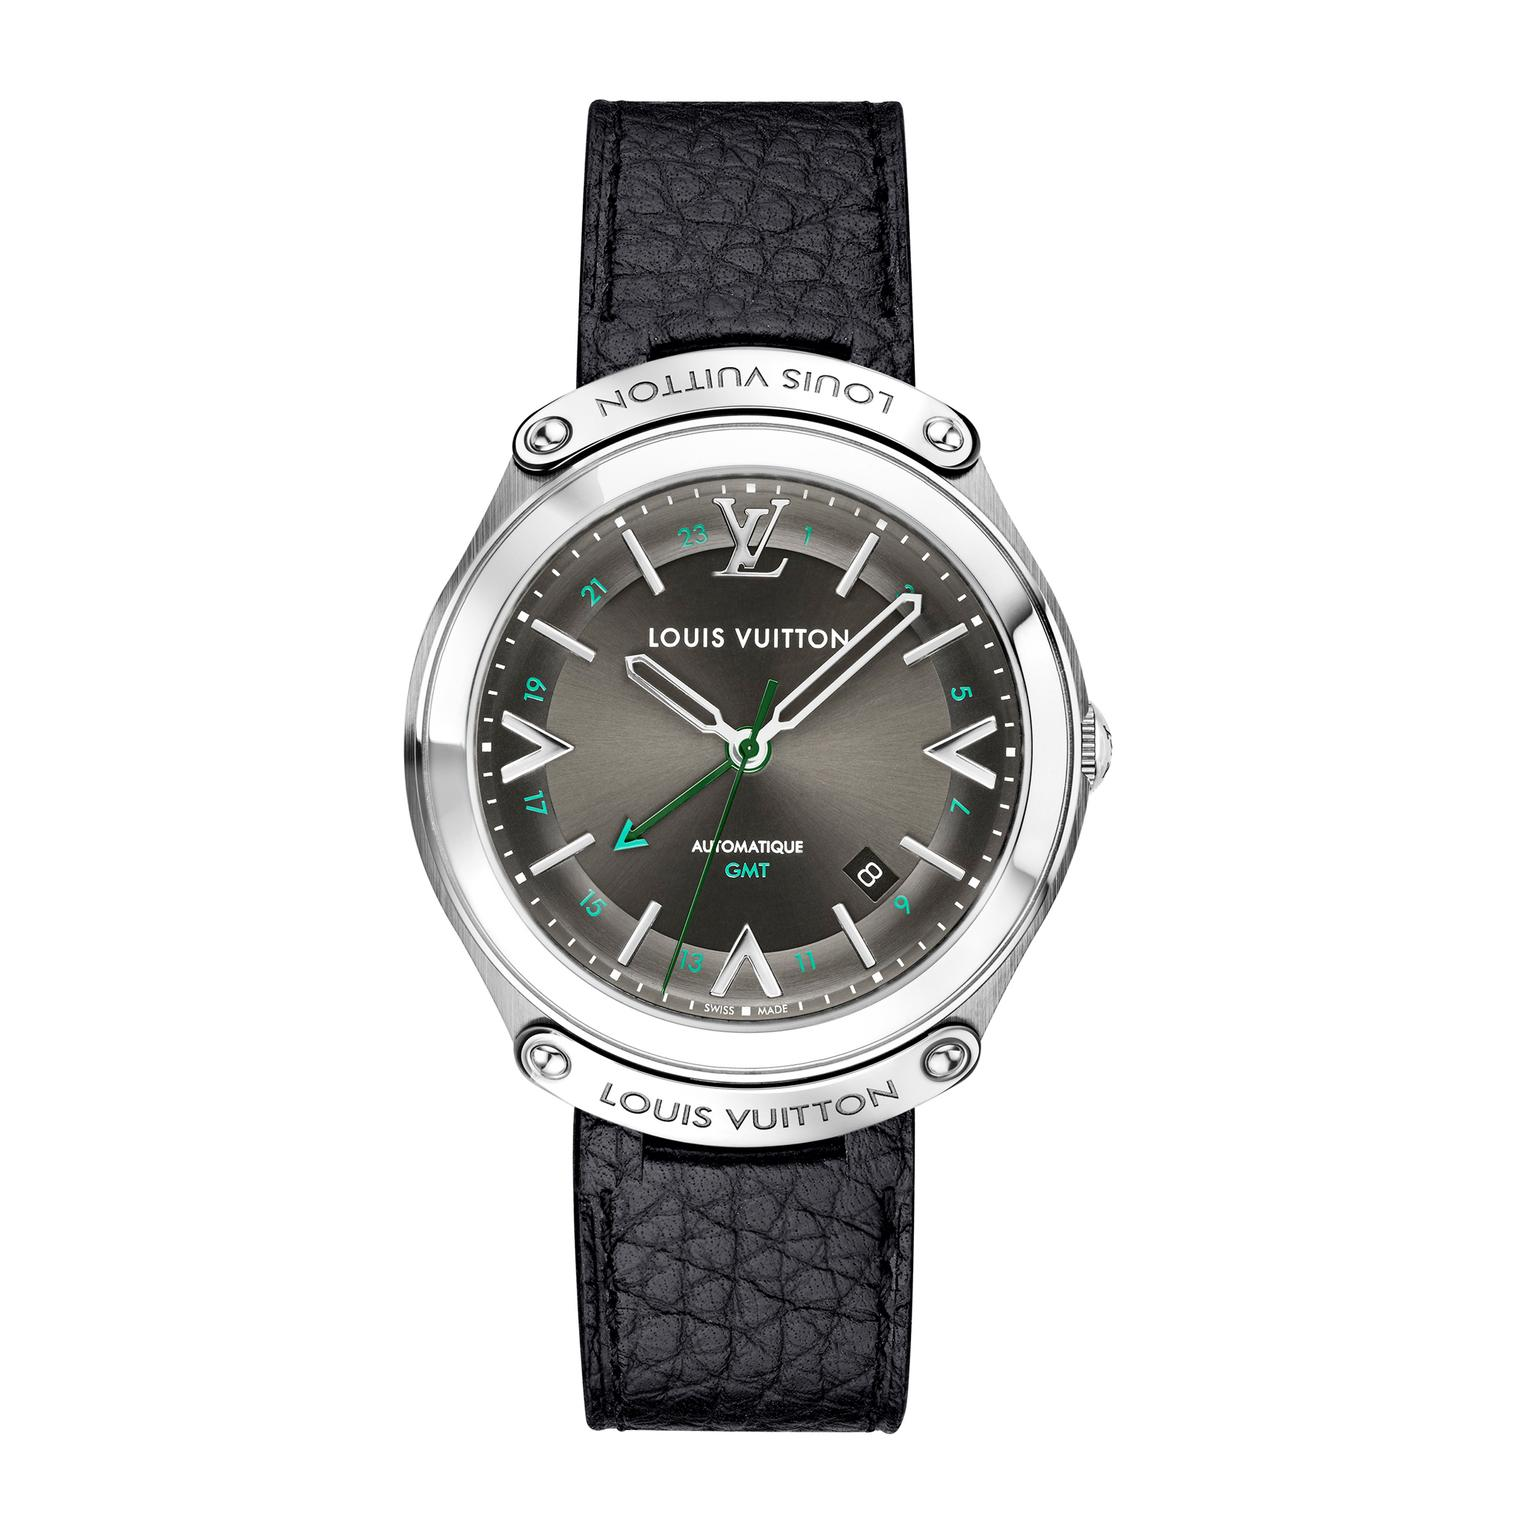 Louis Vuitton Fifty Five 41 mm GMT black strap